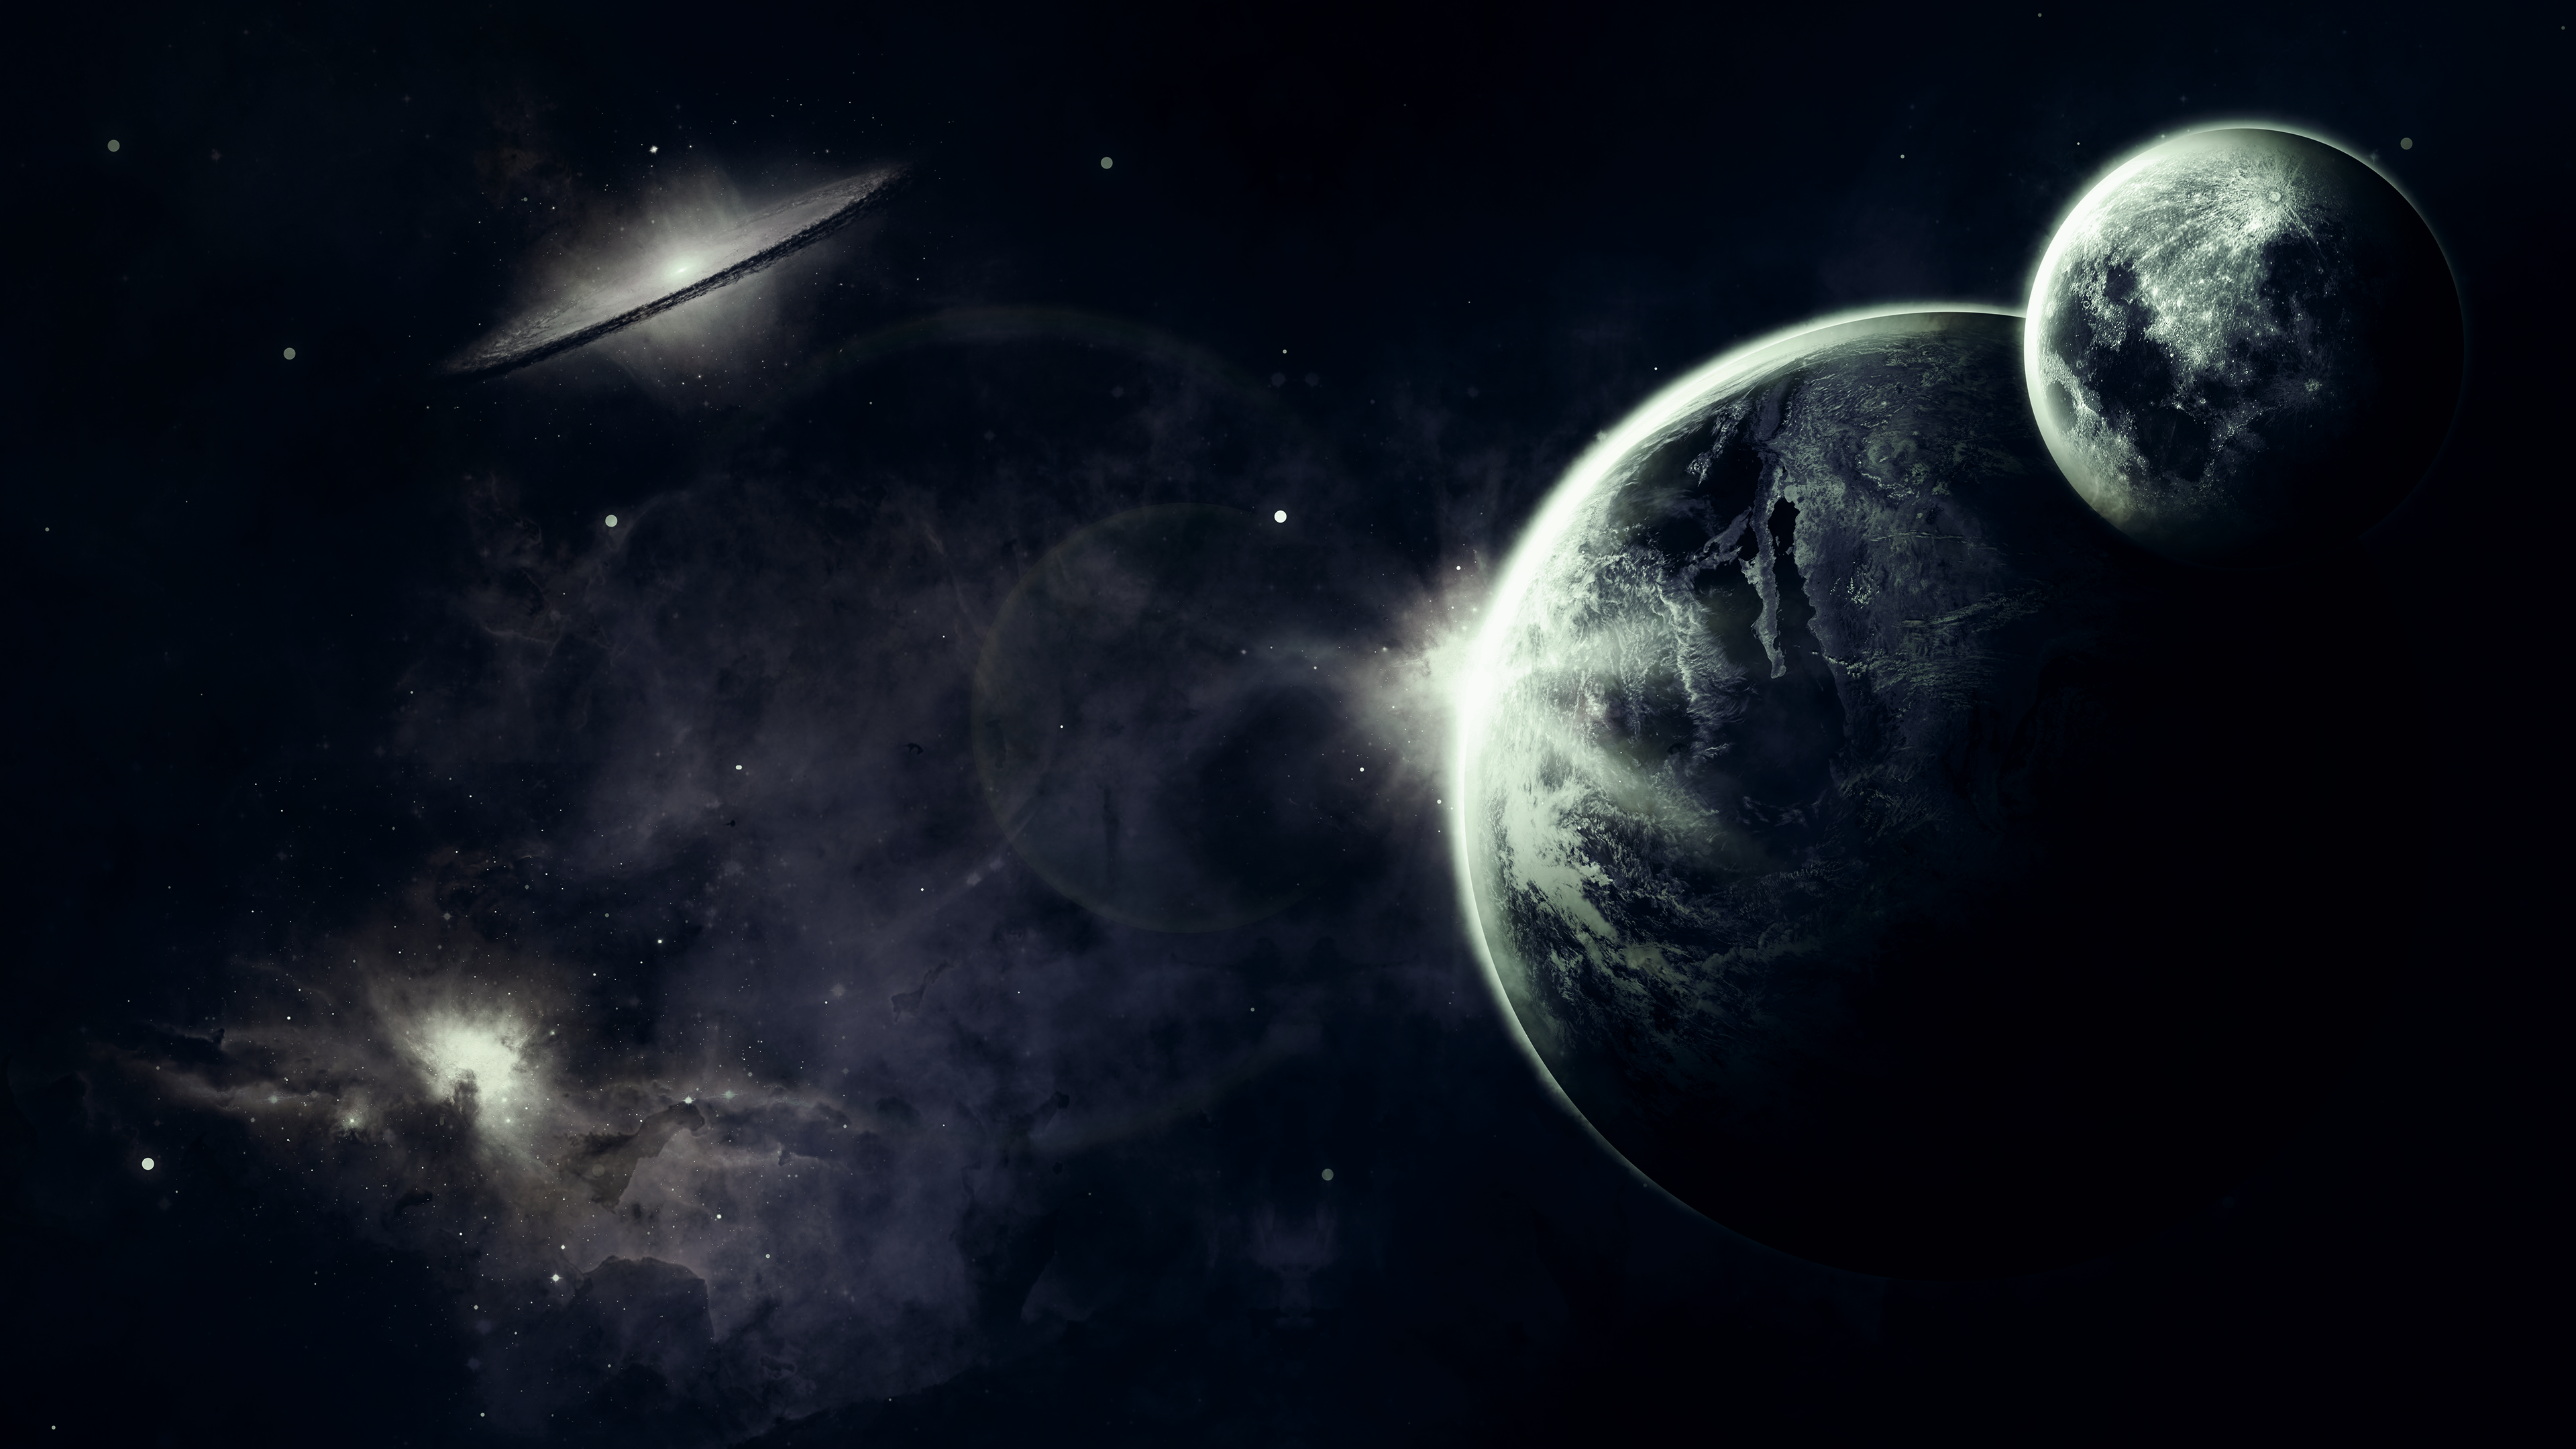 download free hd dark space desktop wallpaper in 4k 0136